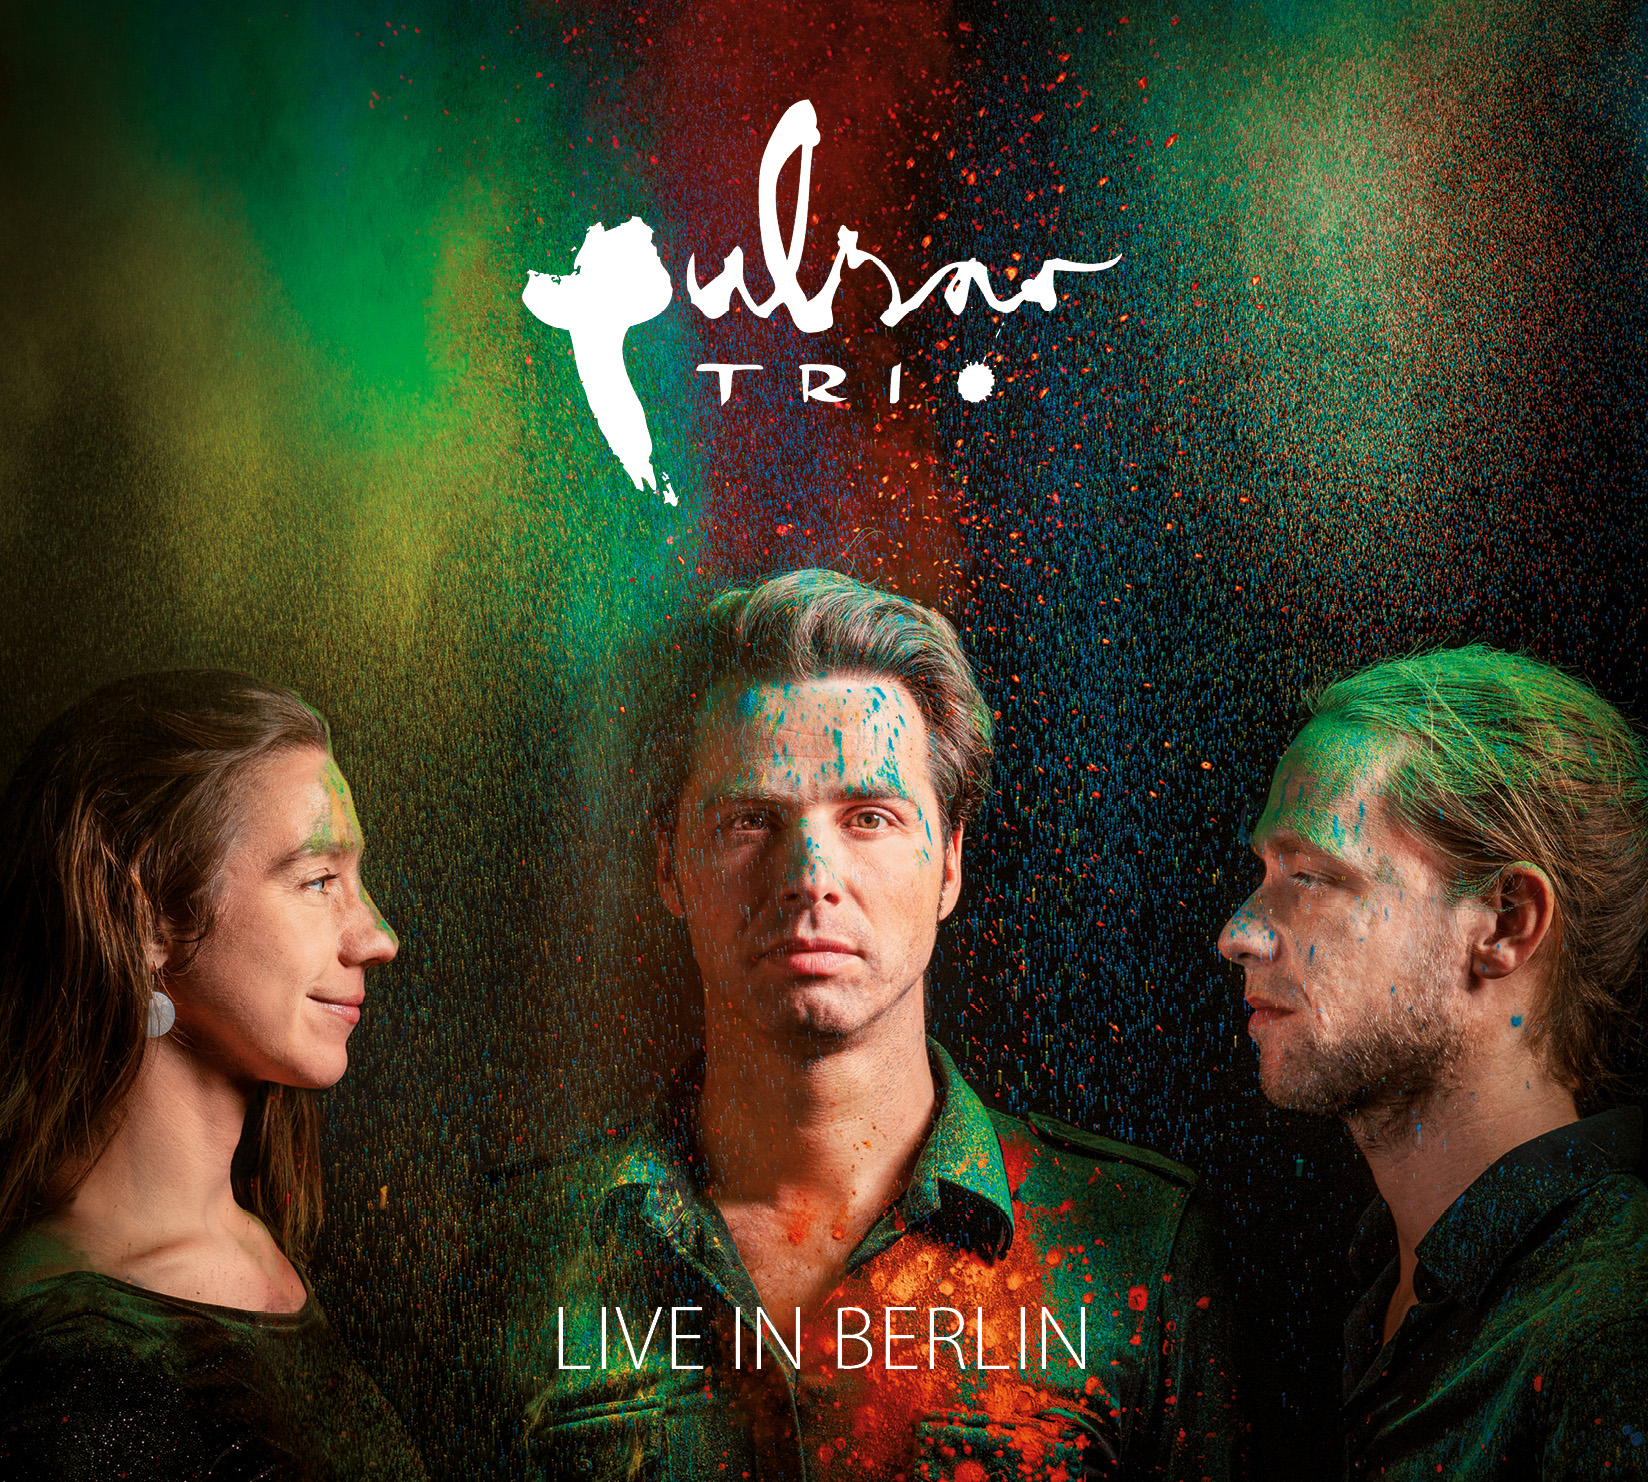 Pulsar Trio Live in Berlin CD Sleeve 1 // Fotografie //  2